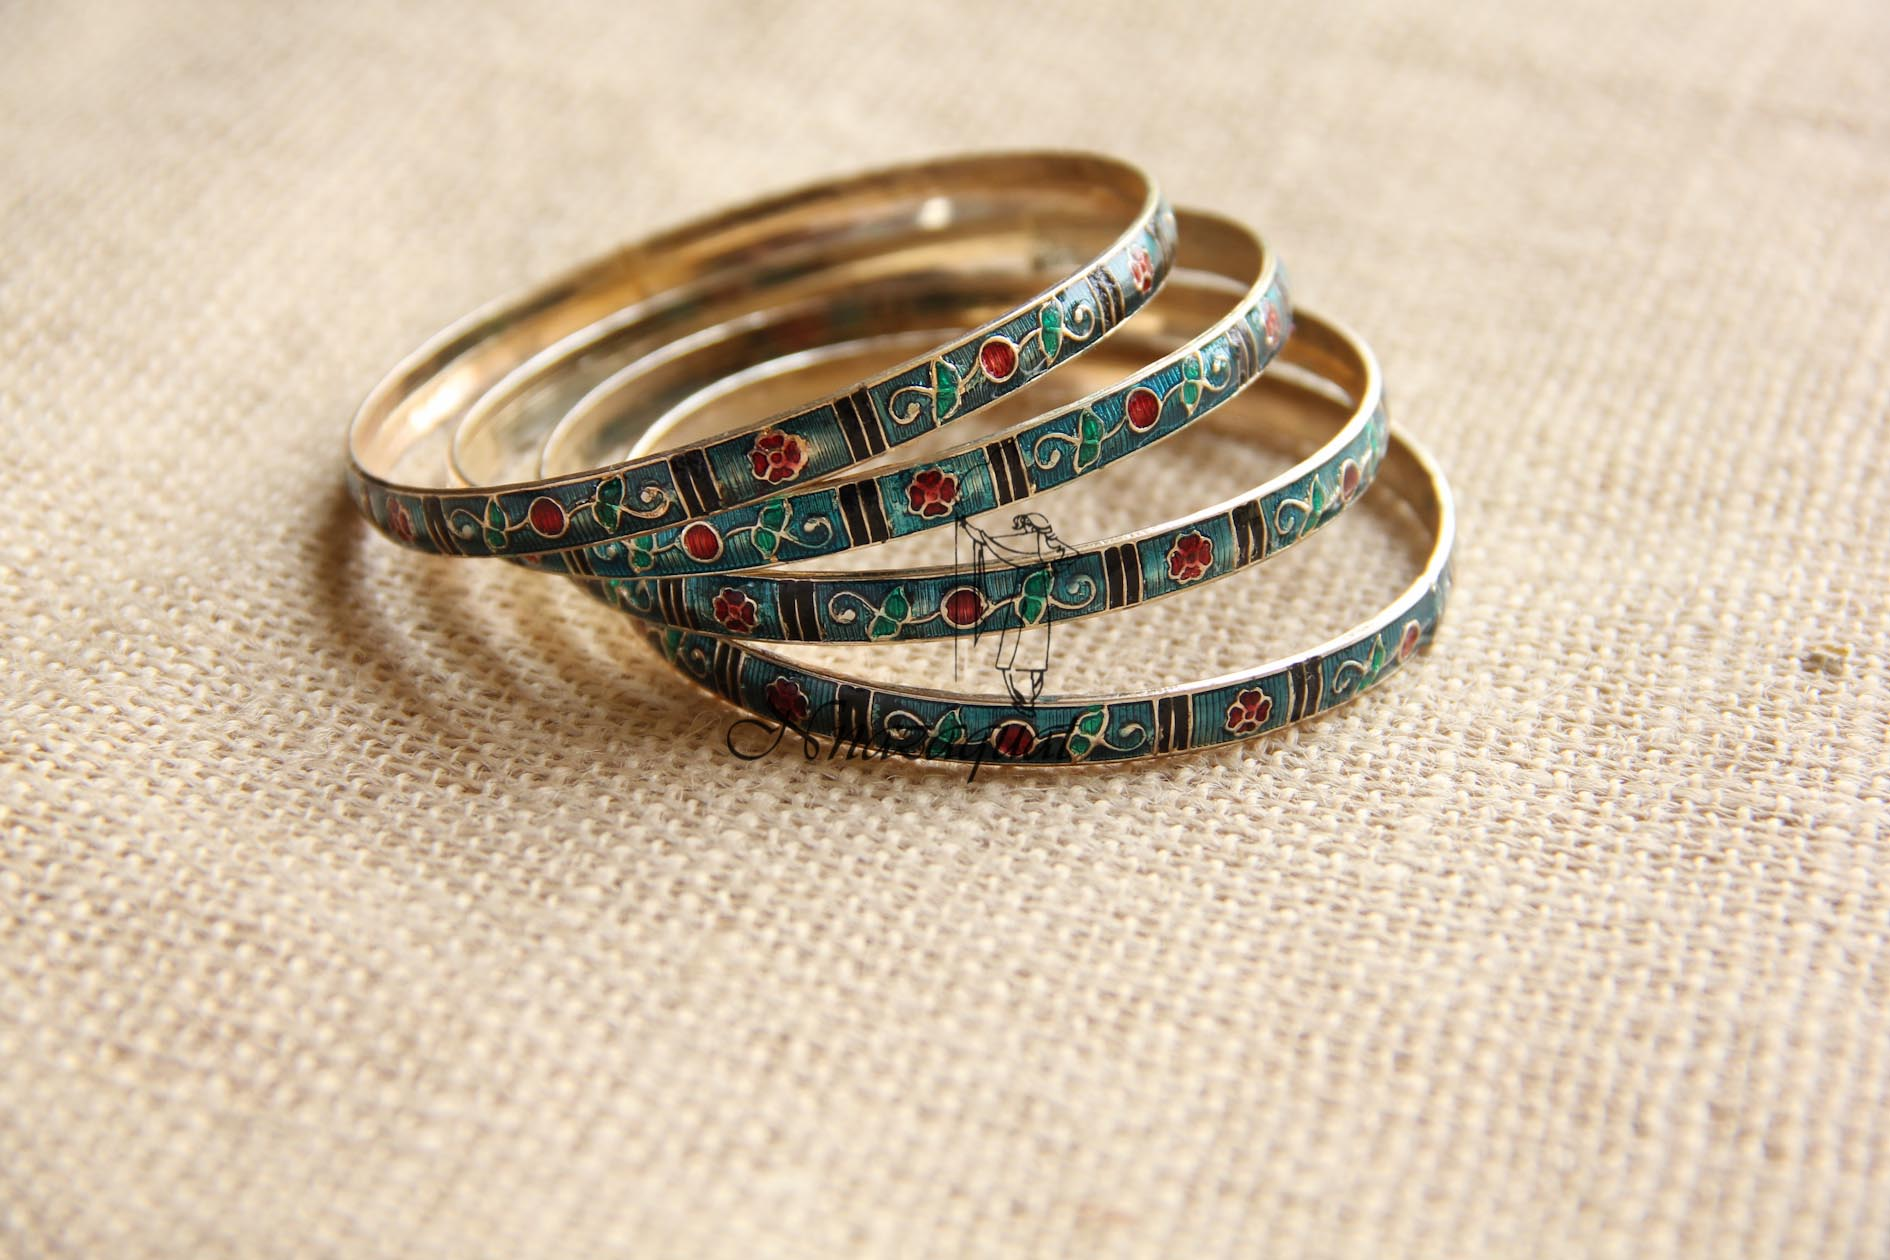 soneri new bangles jewelry gold portfolio traditional enamel gems